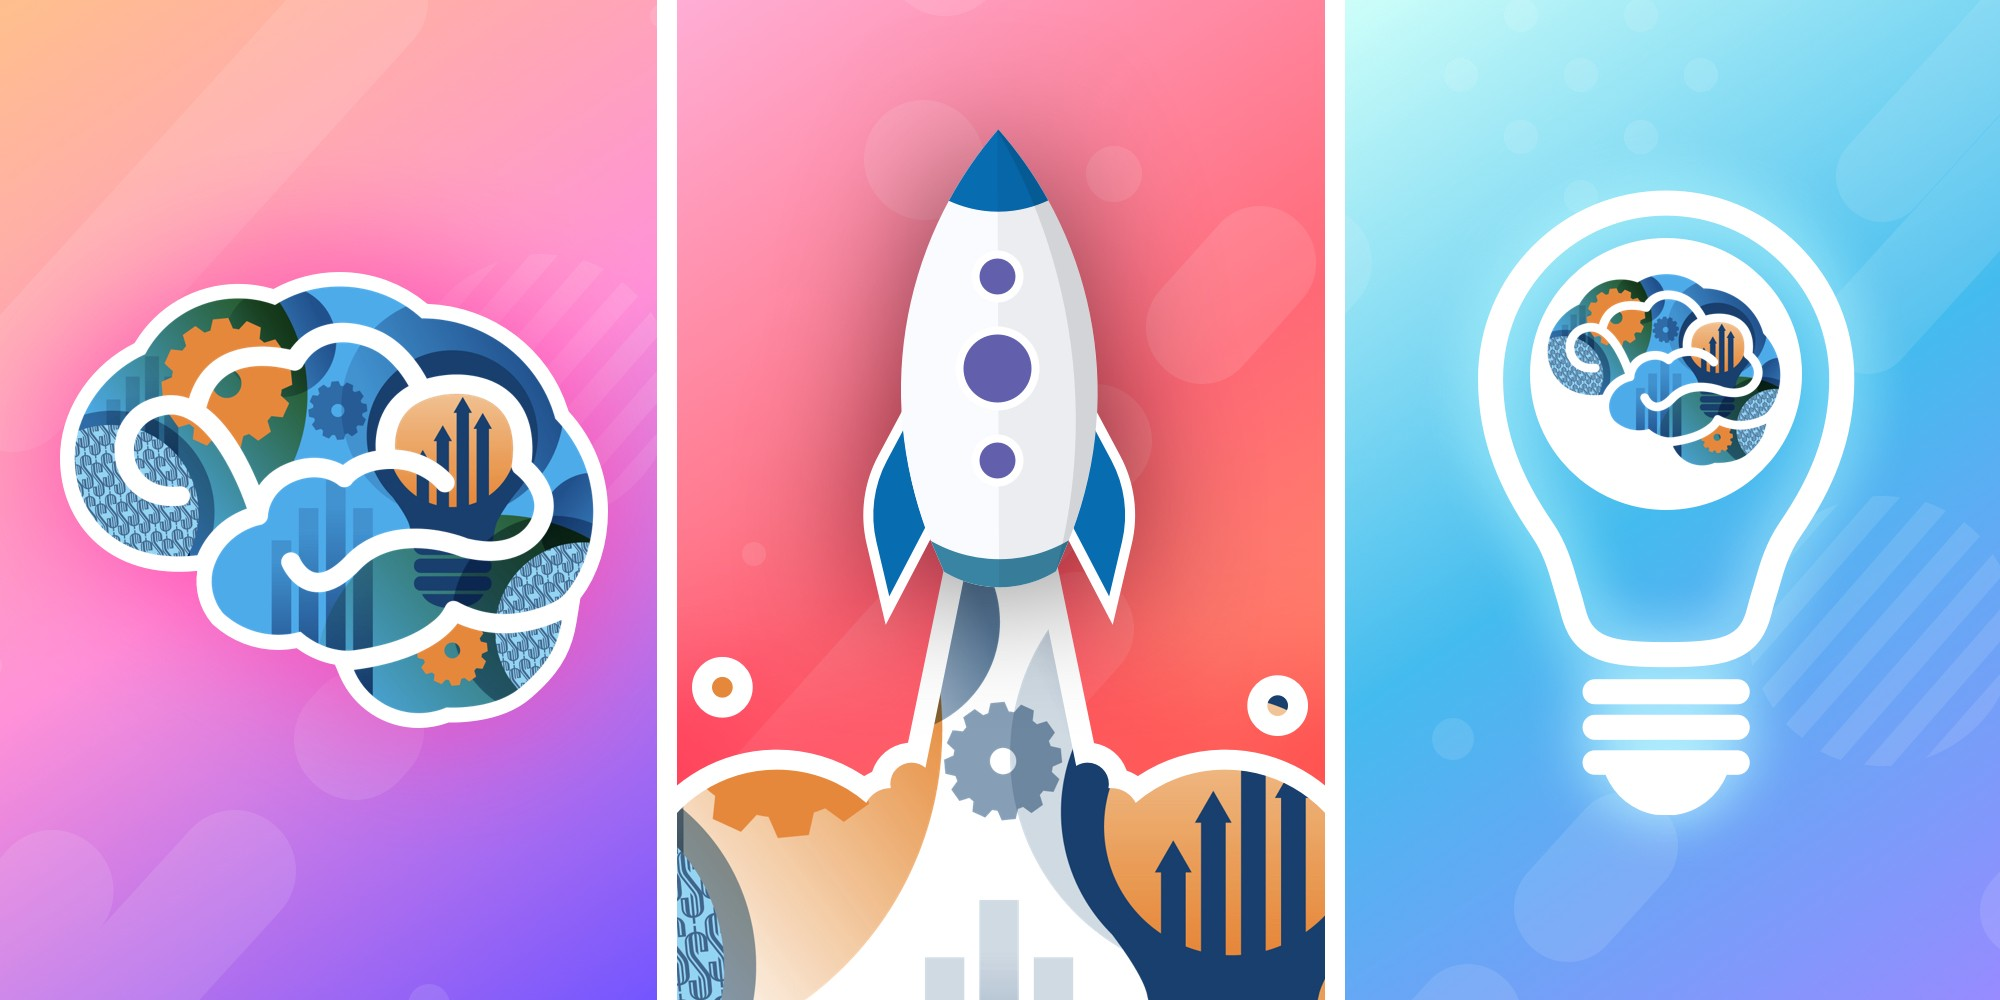 An illustration split into three parts including a brain, rocket ship, and a lightbulb, each representing behavioural design